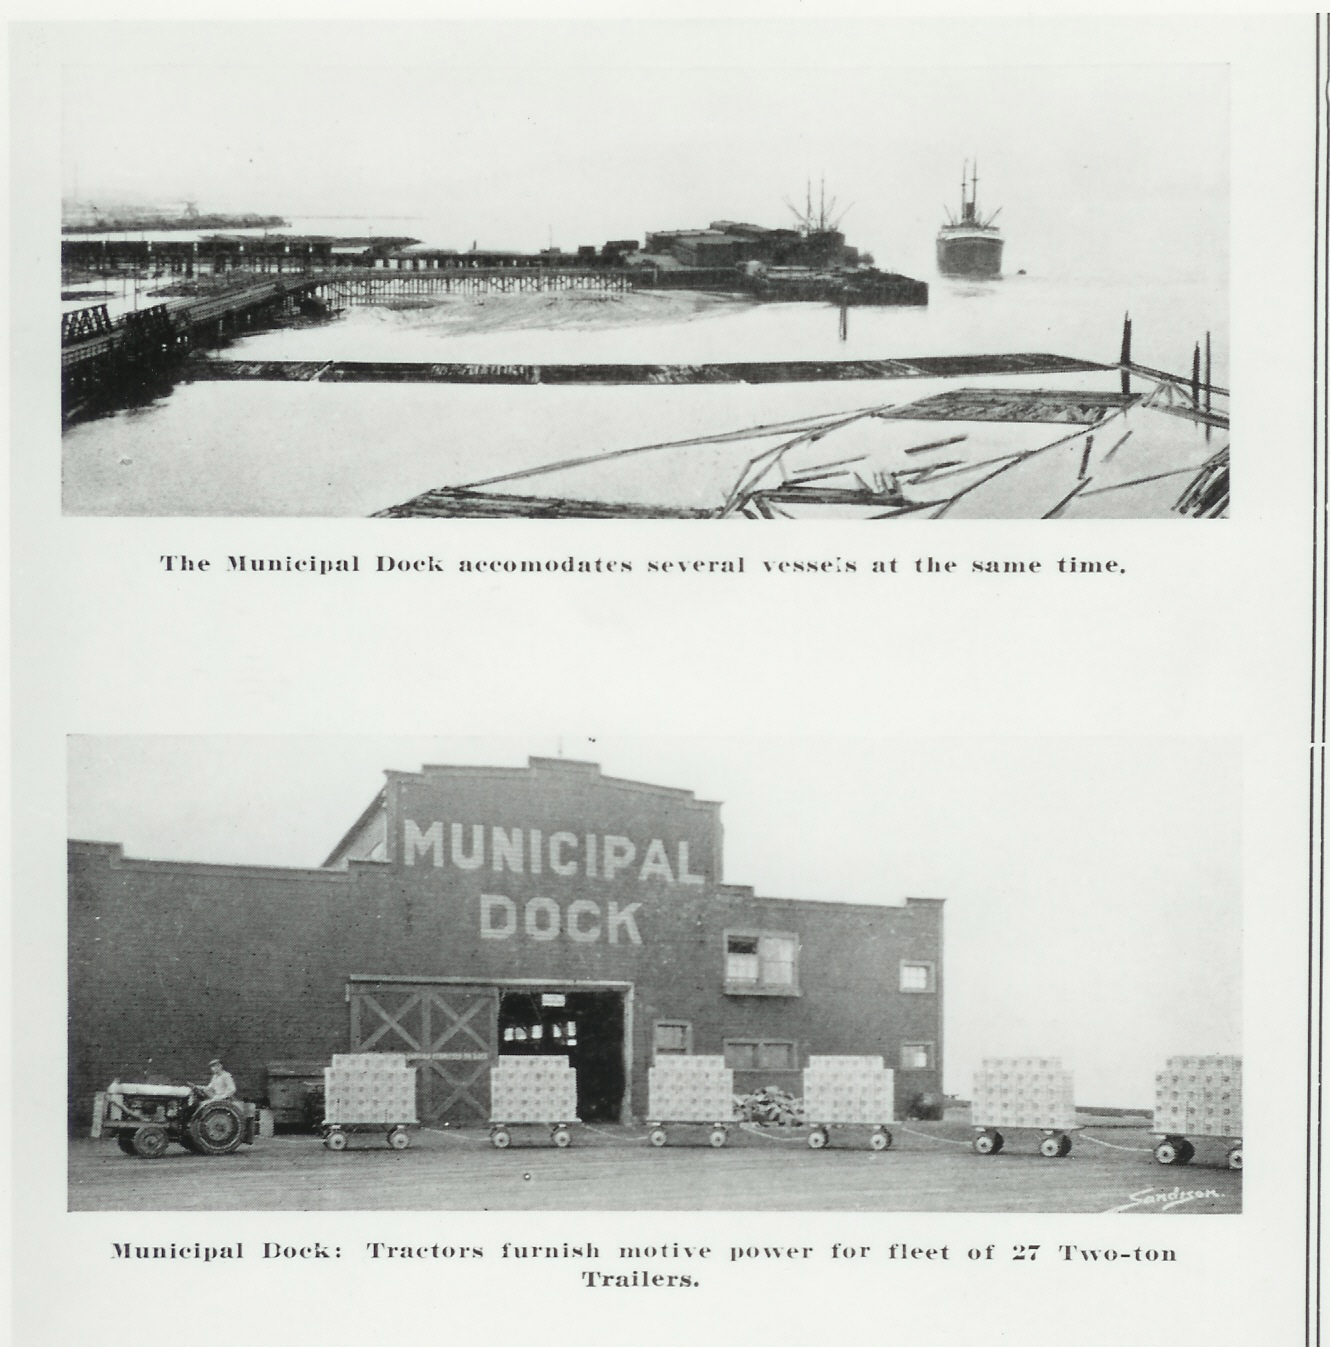 Pictures of a steam ship at the Bellingham Shipping Terminal and a tractor hauling cargo.